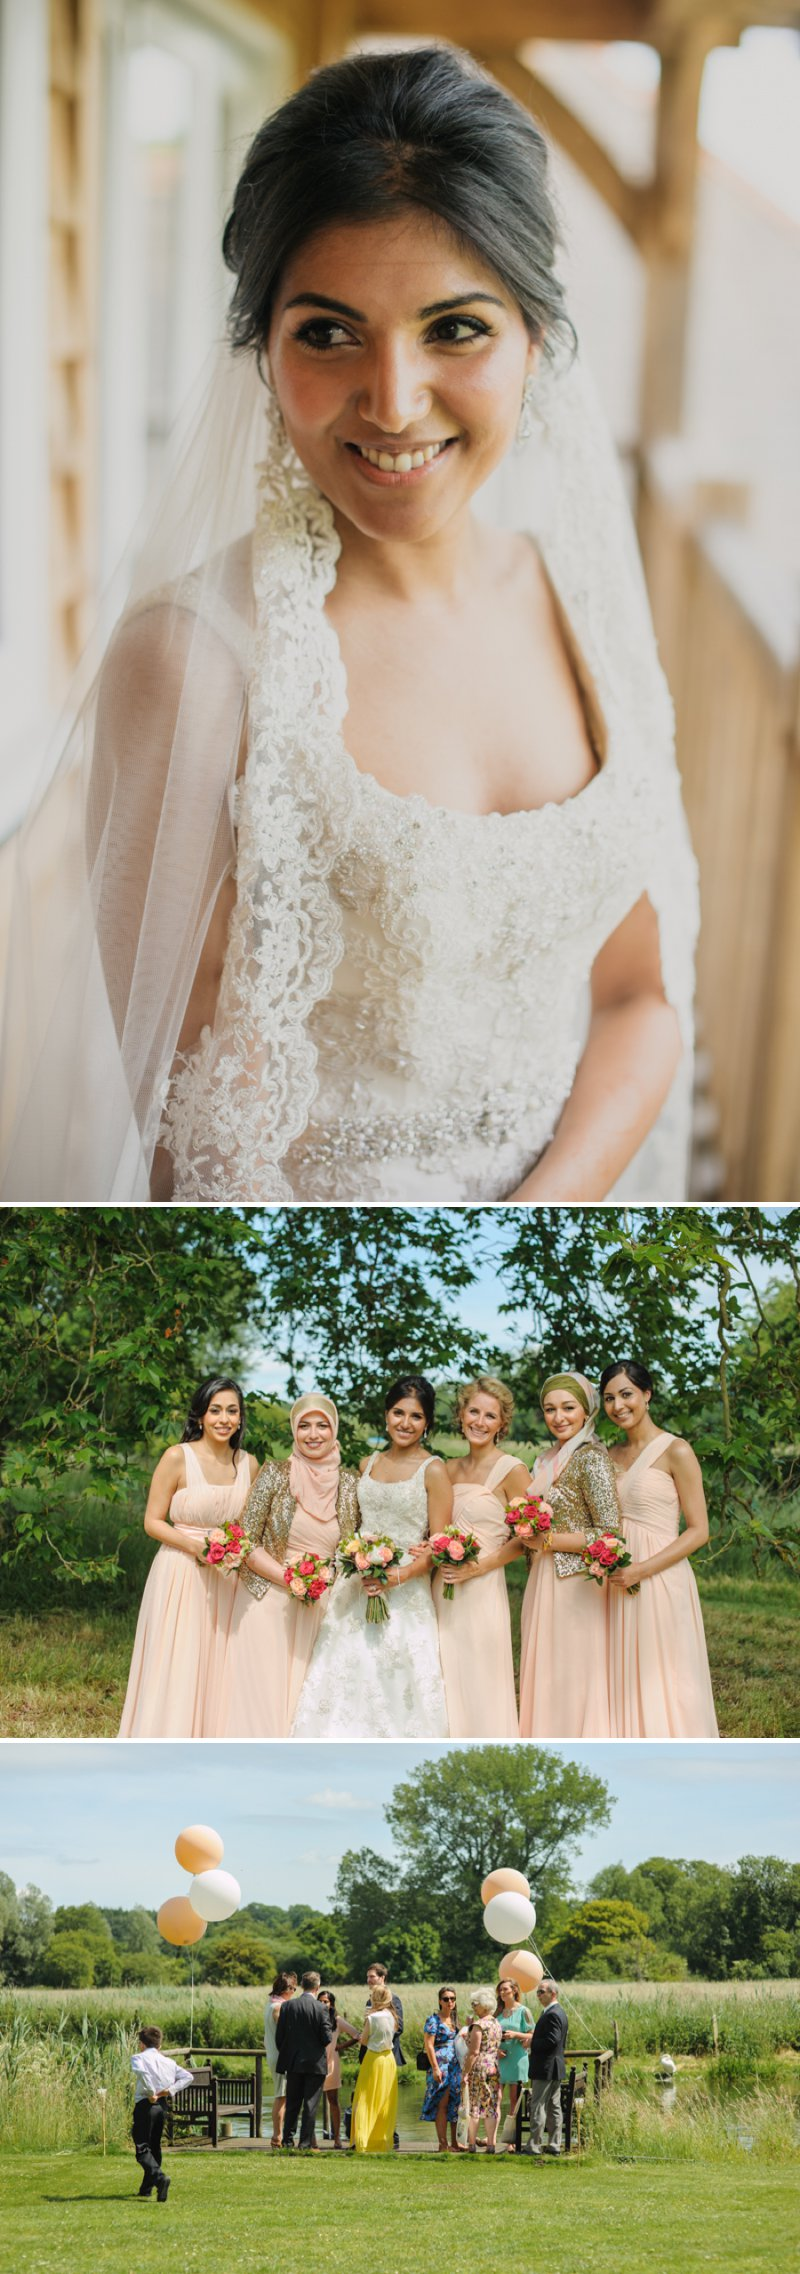 Elegant Tipi Wedding At Houghton Lodge In Hampshire With An Iraqi Bride In Lace Justin Alexander Gown With A Lace Edged Veil And Groom In Blue Three Piece Suit From Reiss With Bridemaids In Pink 1